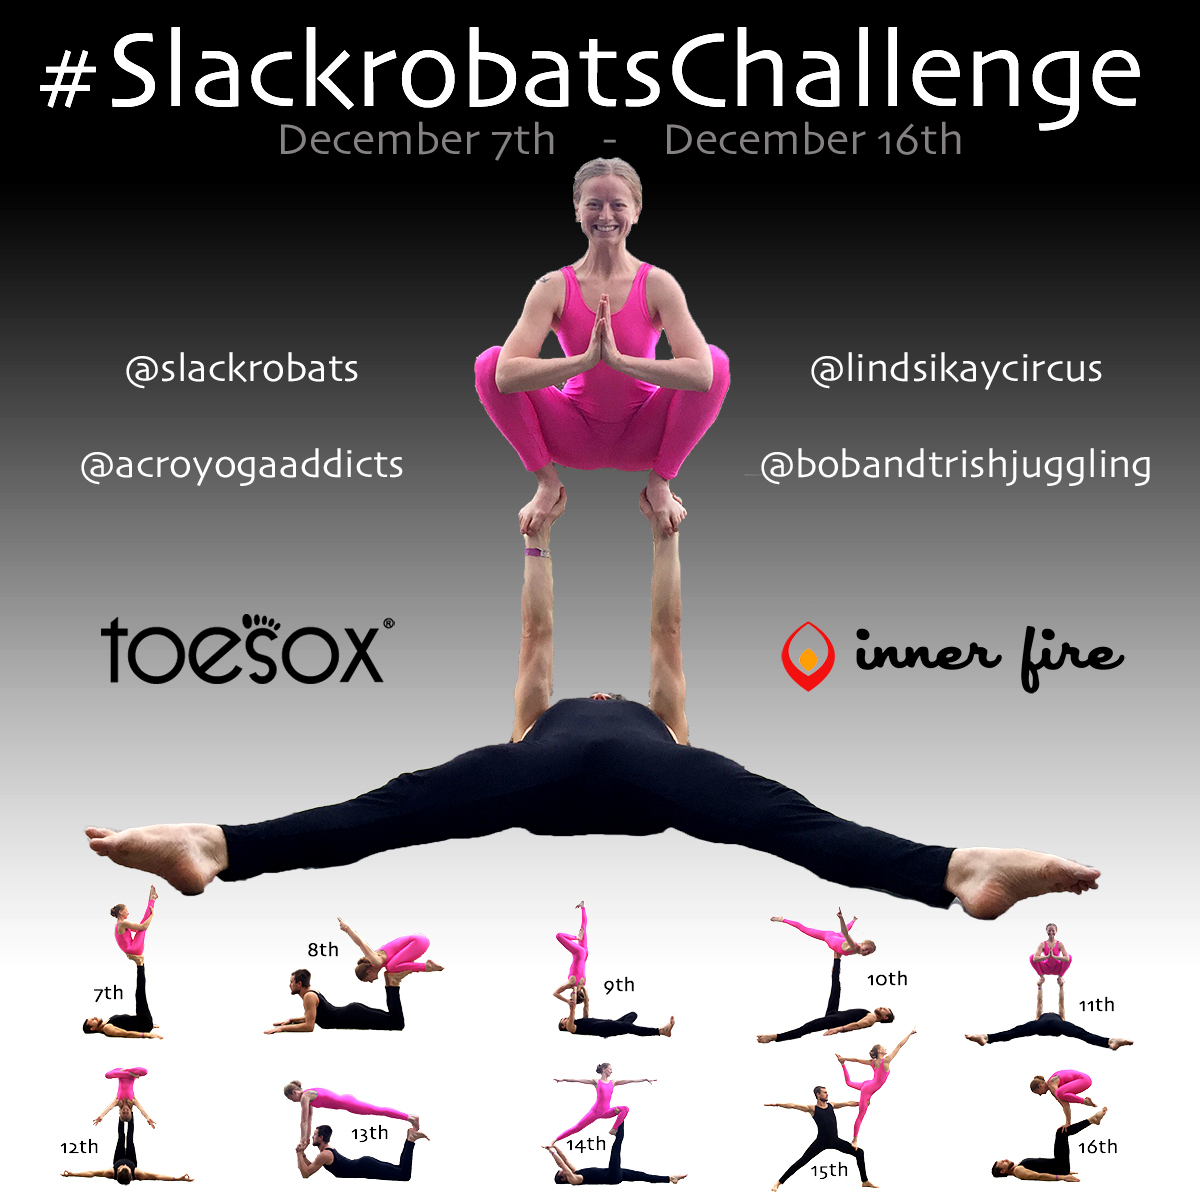 Slackrobats Challenge December 2016 toesox inner fire bob and trish juggling acroyoga addicts lindsikaycircus slackrobats